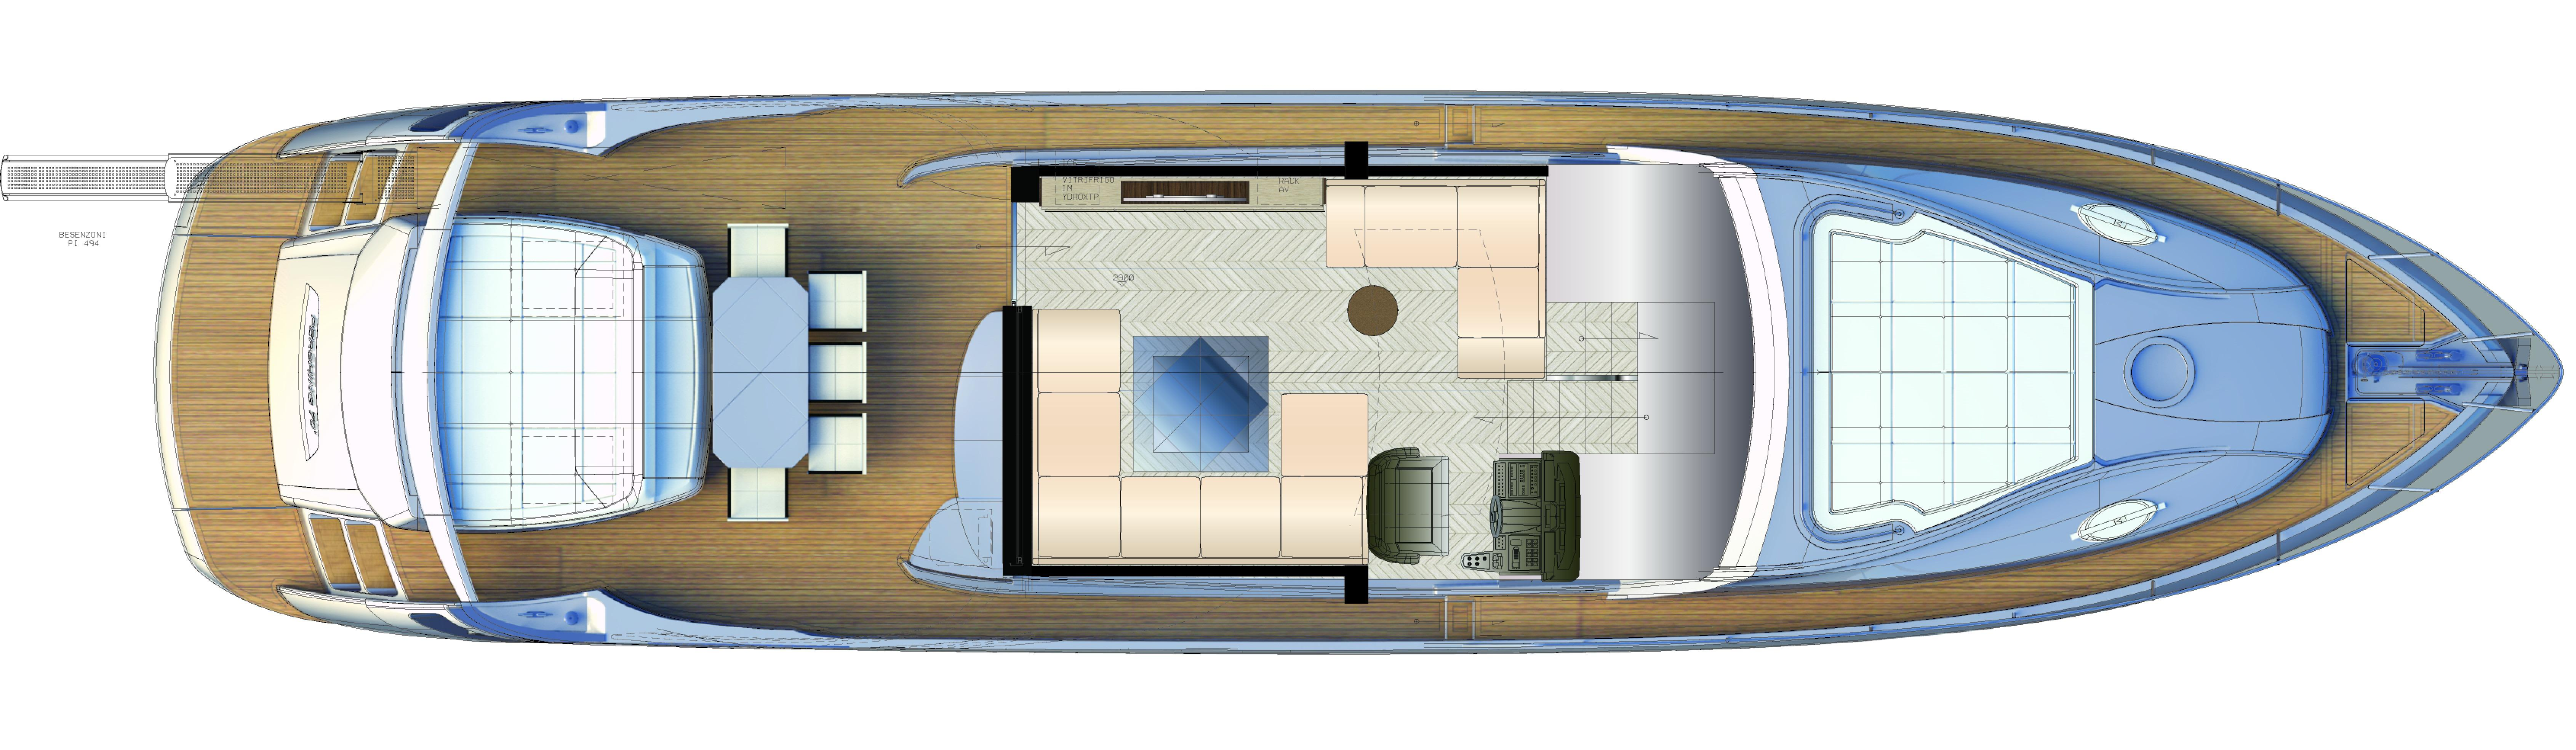 Manufacturer Provided Image: Pershing 70 Upper Deck Layout Plan